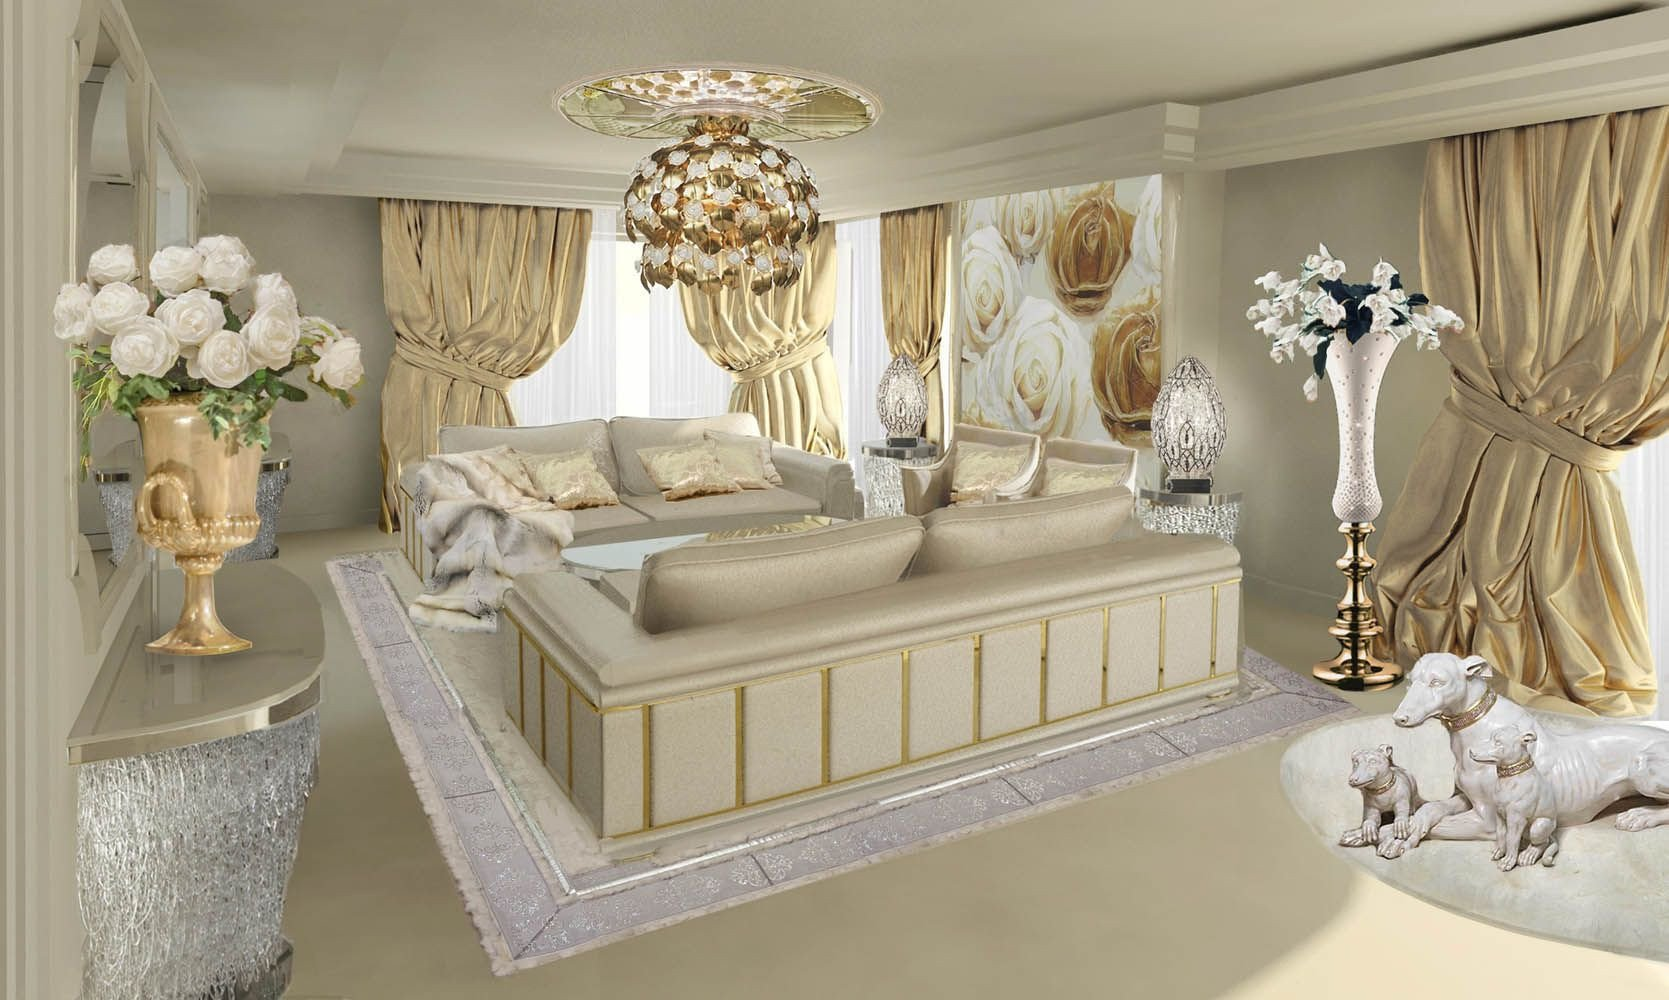 Golden and White Bedroom Fresh Lidia Bersani Luxury Interior Design Richly Decorated